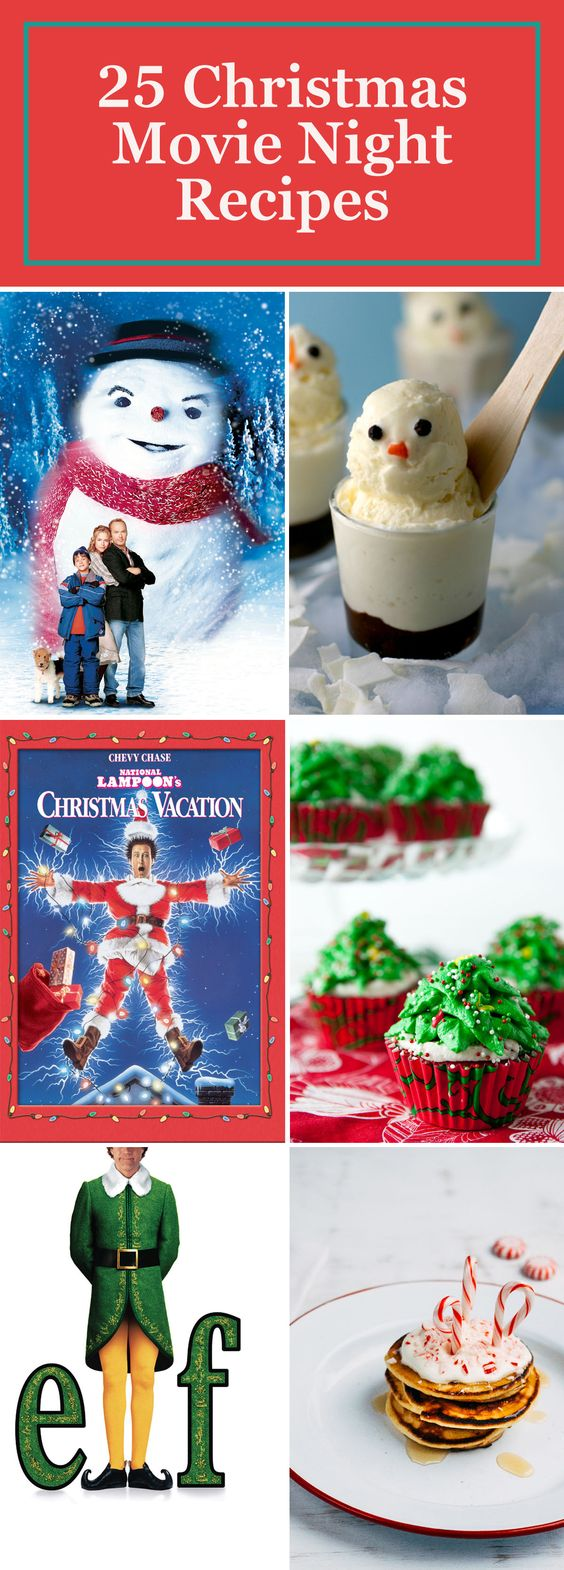 We've got the perfect pairings for all of your favorite Christmas movies, from savory snacks to delicious desserts. These Christmas recipes will bring a whole new level of holiday magic to your next movie night.